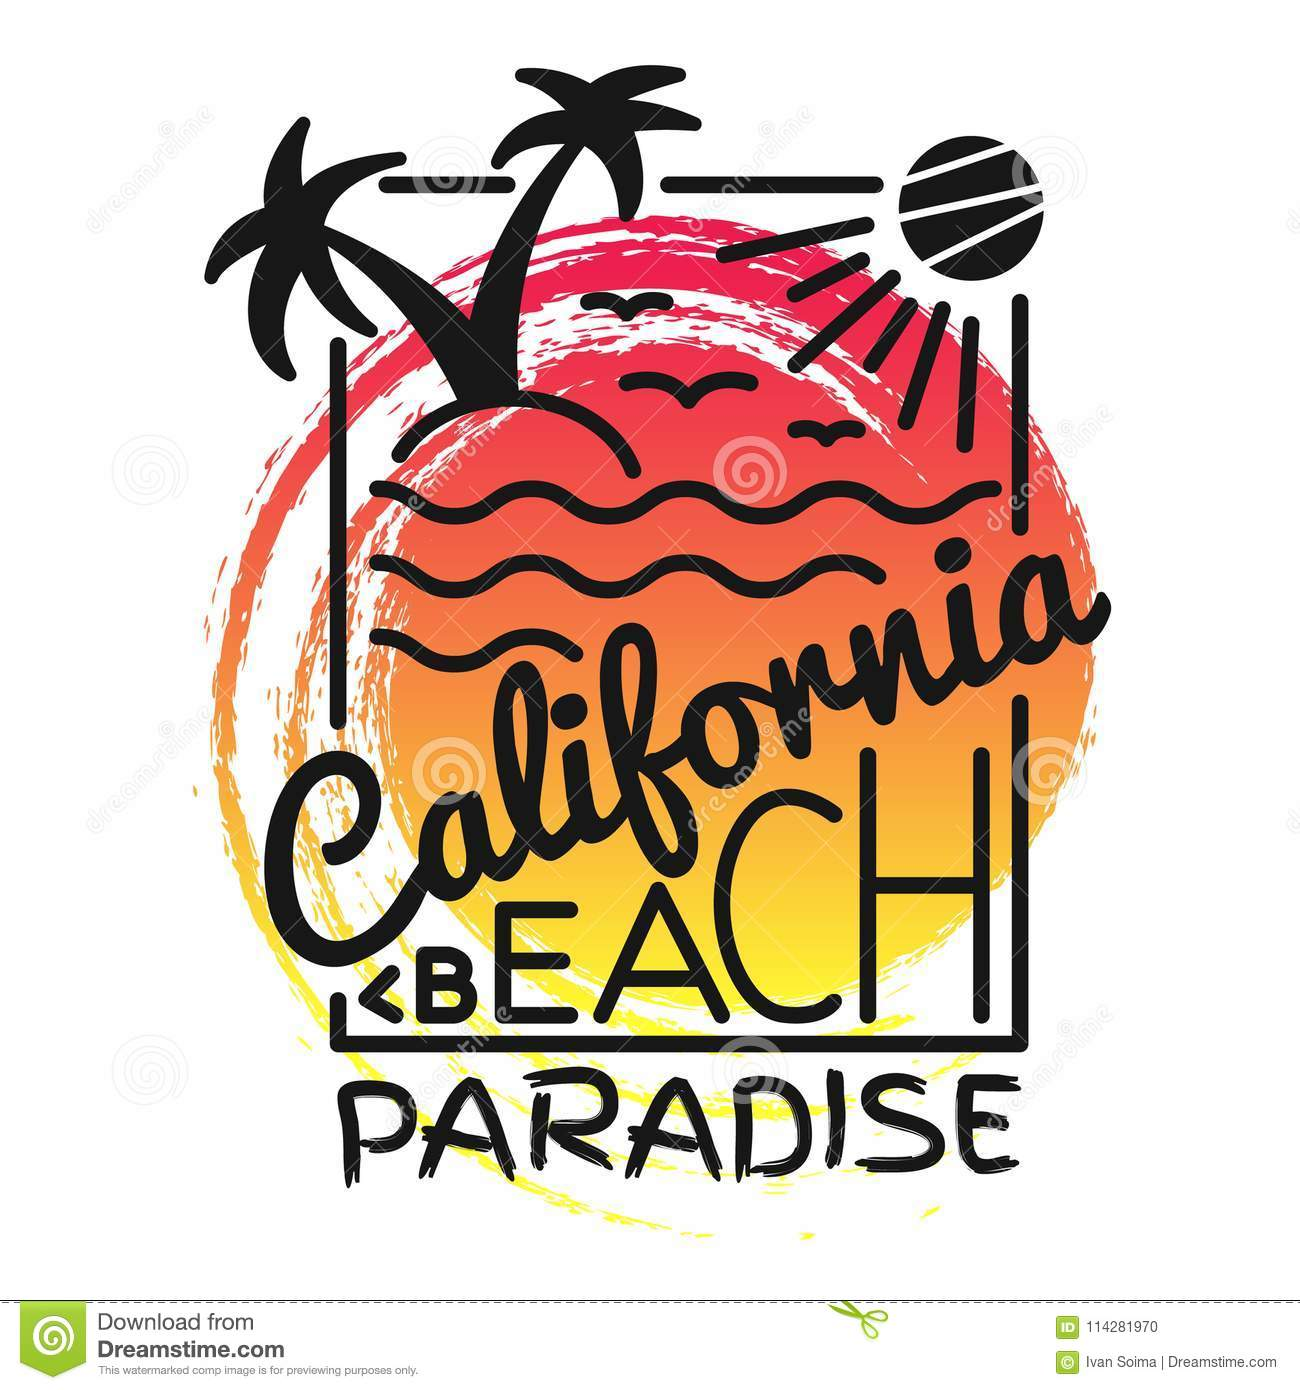 d9f59a29 California beach paradise print for t-shirt. Vector illustration on the  theme of surf